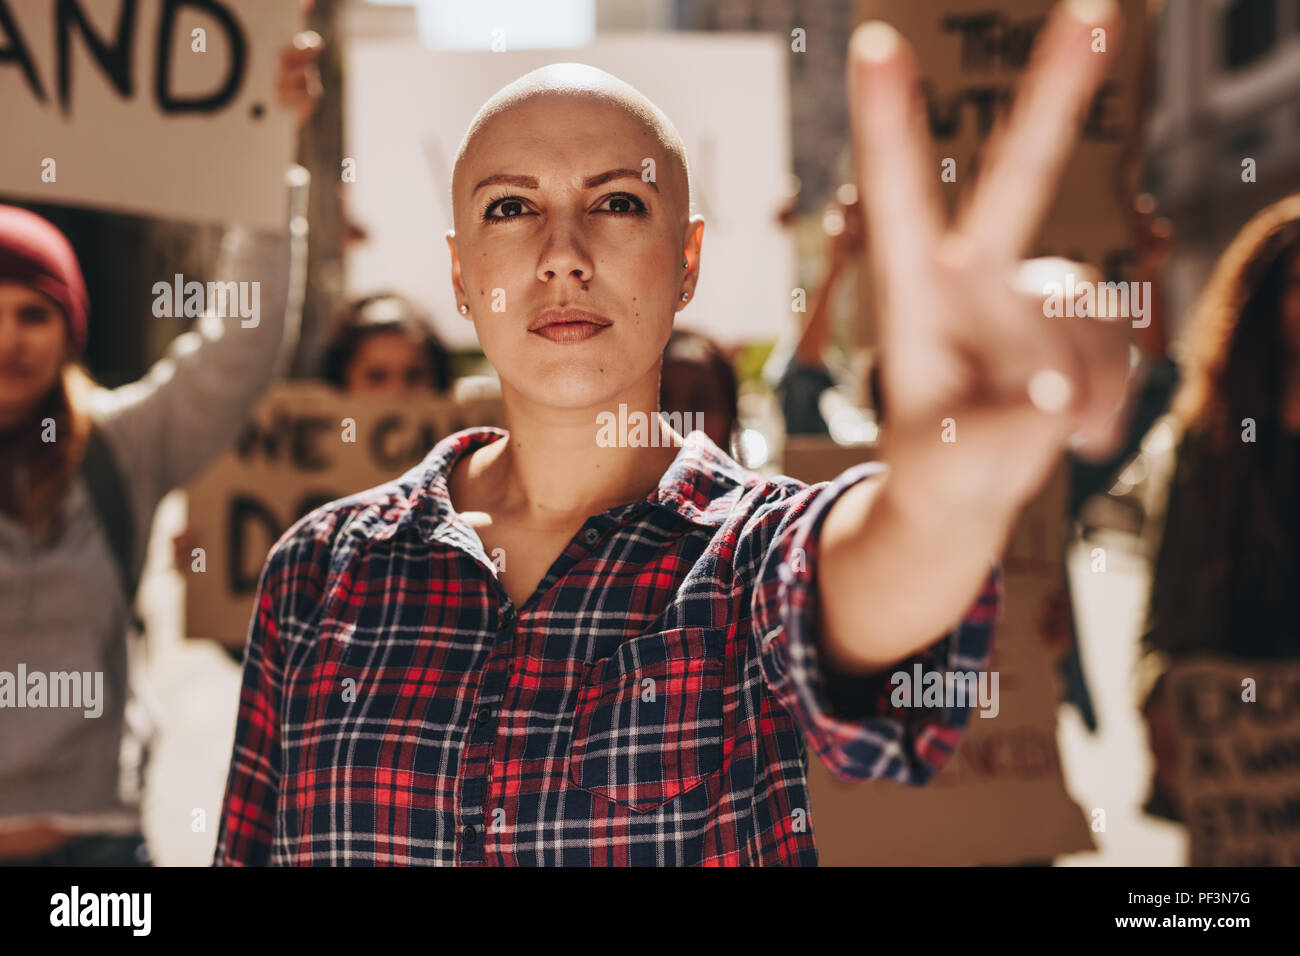 Bald woman protesting outdoors and showing a peace hand sign. Woman with group of people protesting outdoors on city street. - Stock Image